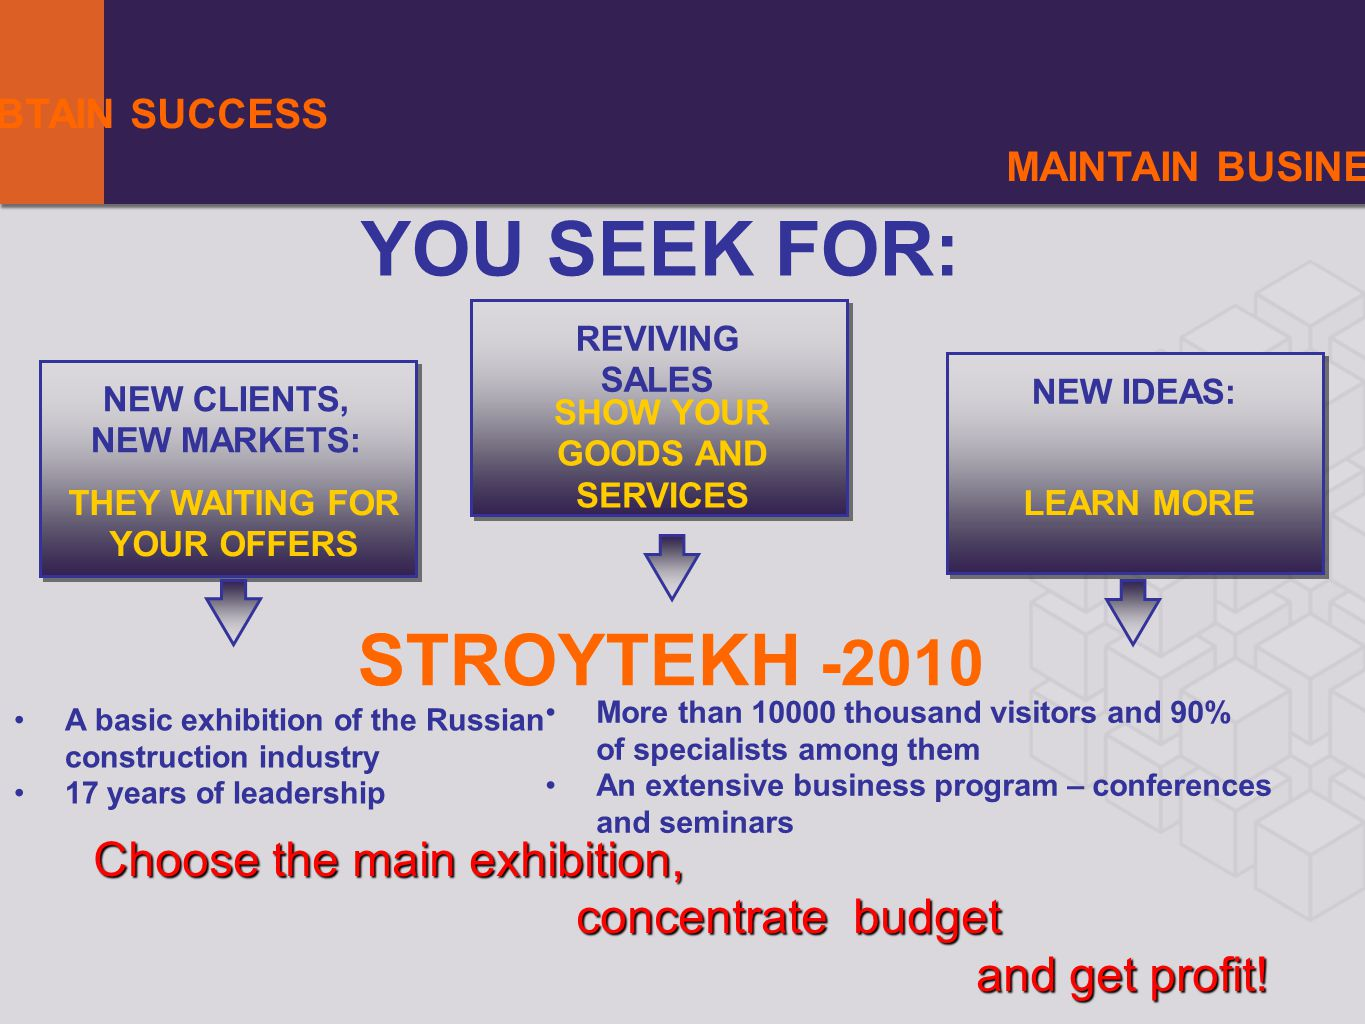 YOUR AIMS MAINTAIN BUSINESS YOU SEEK FOR: NEW CLIENTS, NEW MARKETS: REVIVING SALES NEW IDEAS: A basic exhibition of the Russian construction industry 17 years of leadership THEY WAITING FOR YOUR OFFERS SHOW YOUR GOODS AND SERVICES LEARN MORE Choose the main exhibition, concentrate budget and get profit.